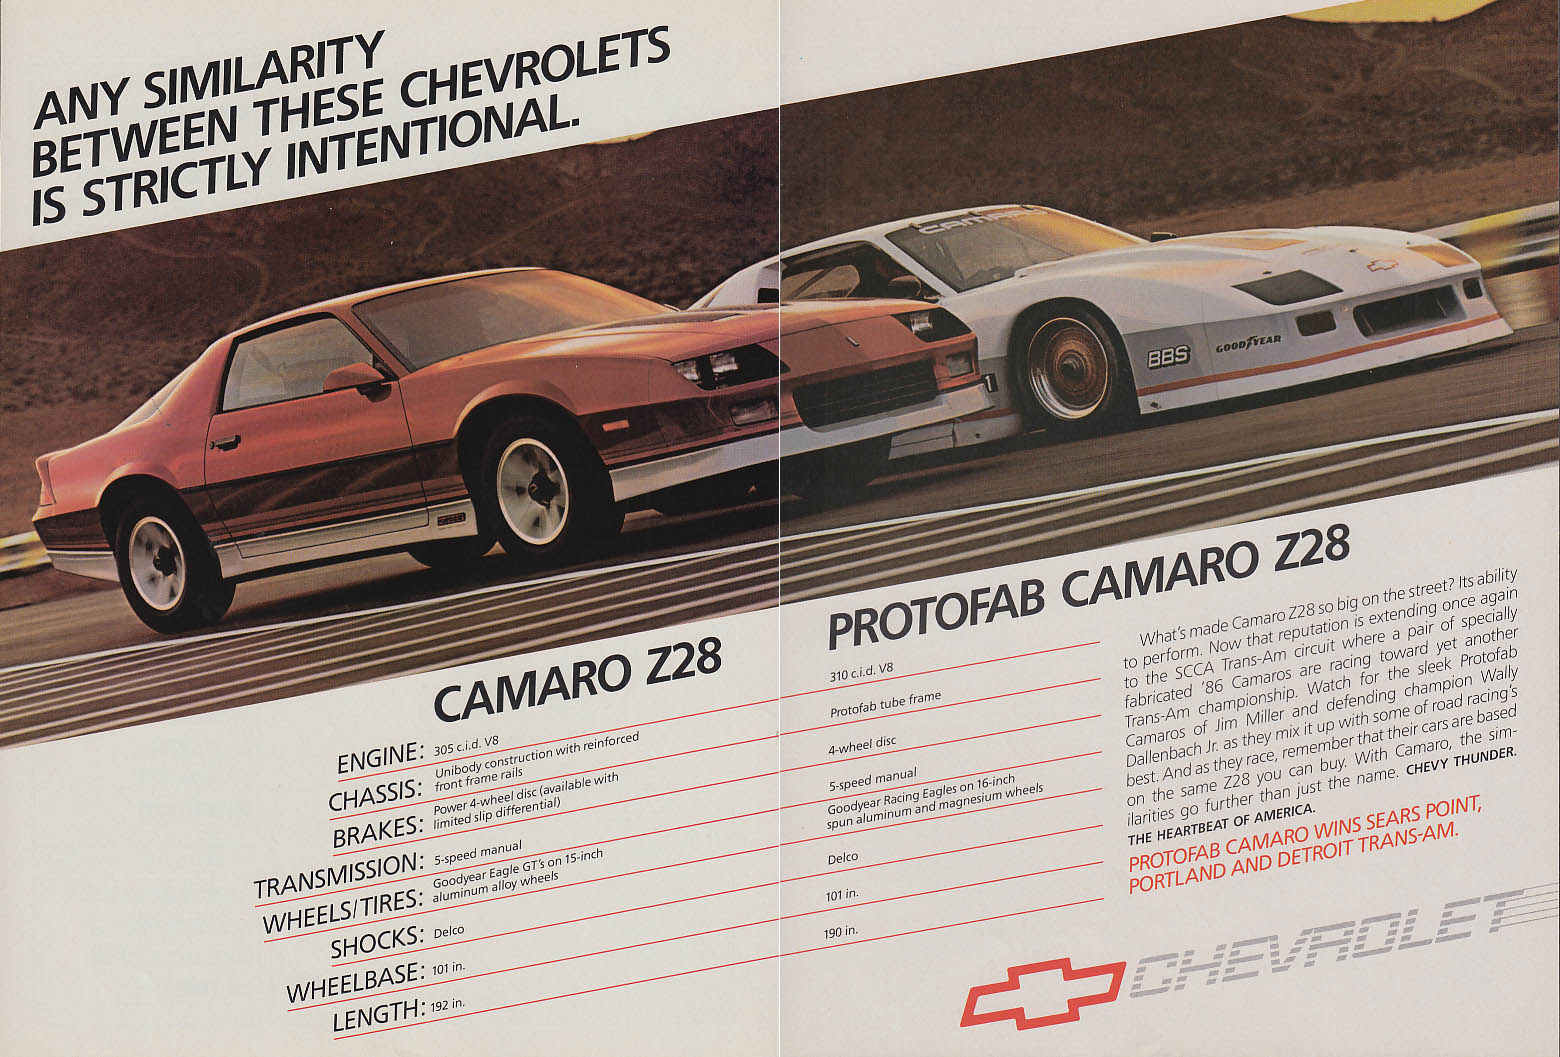 Any similarity is intentional Camaro Z28 Protofab Camaro Z28 ad 1986